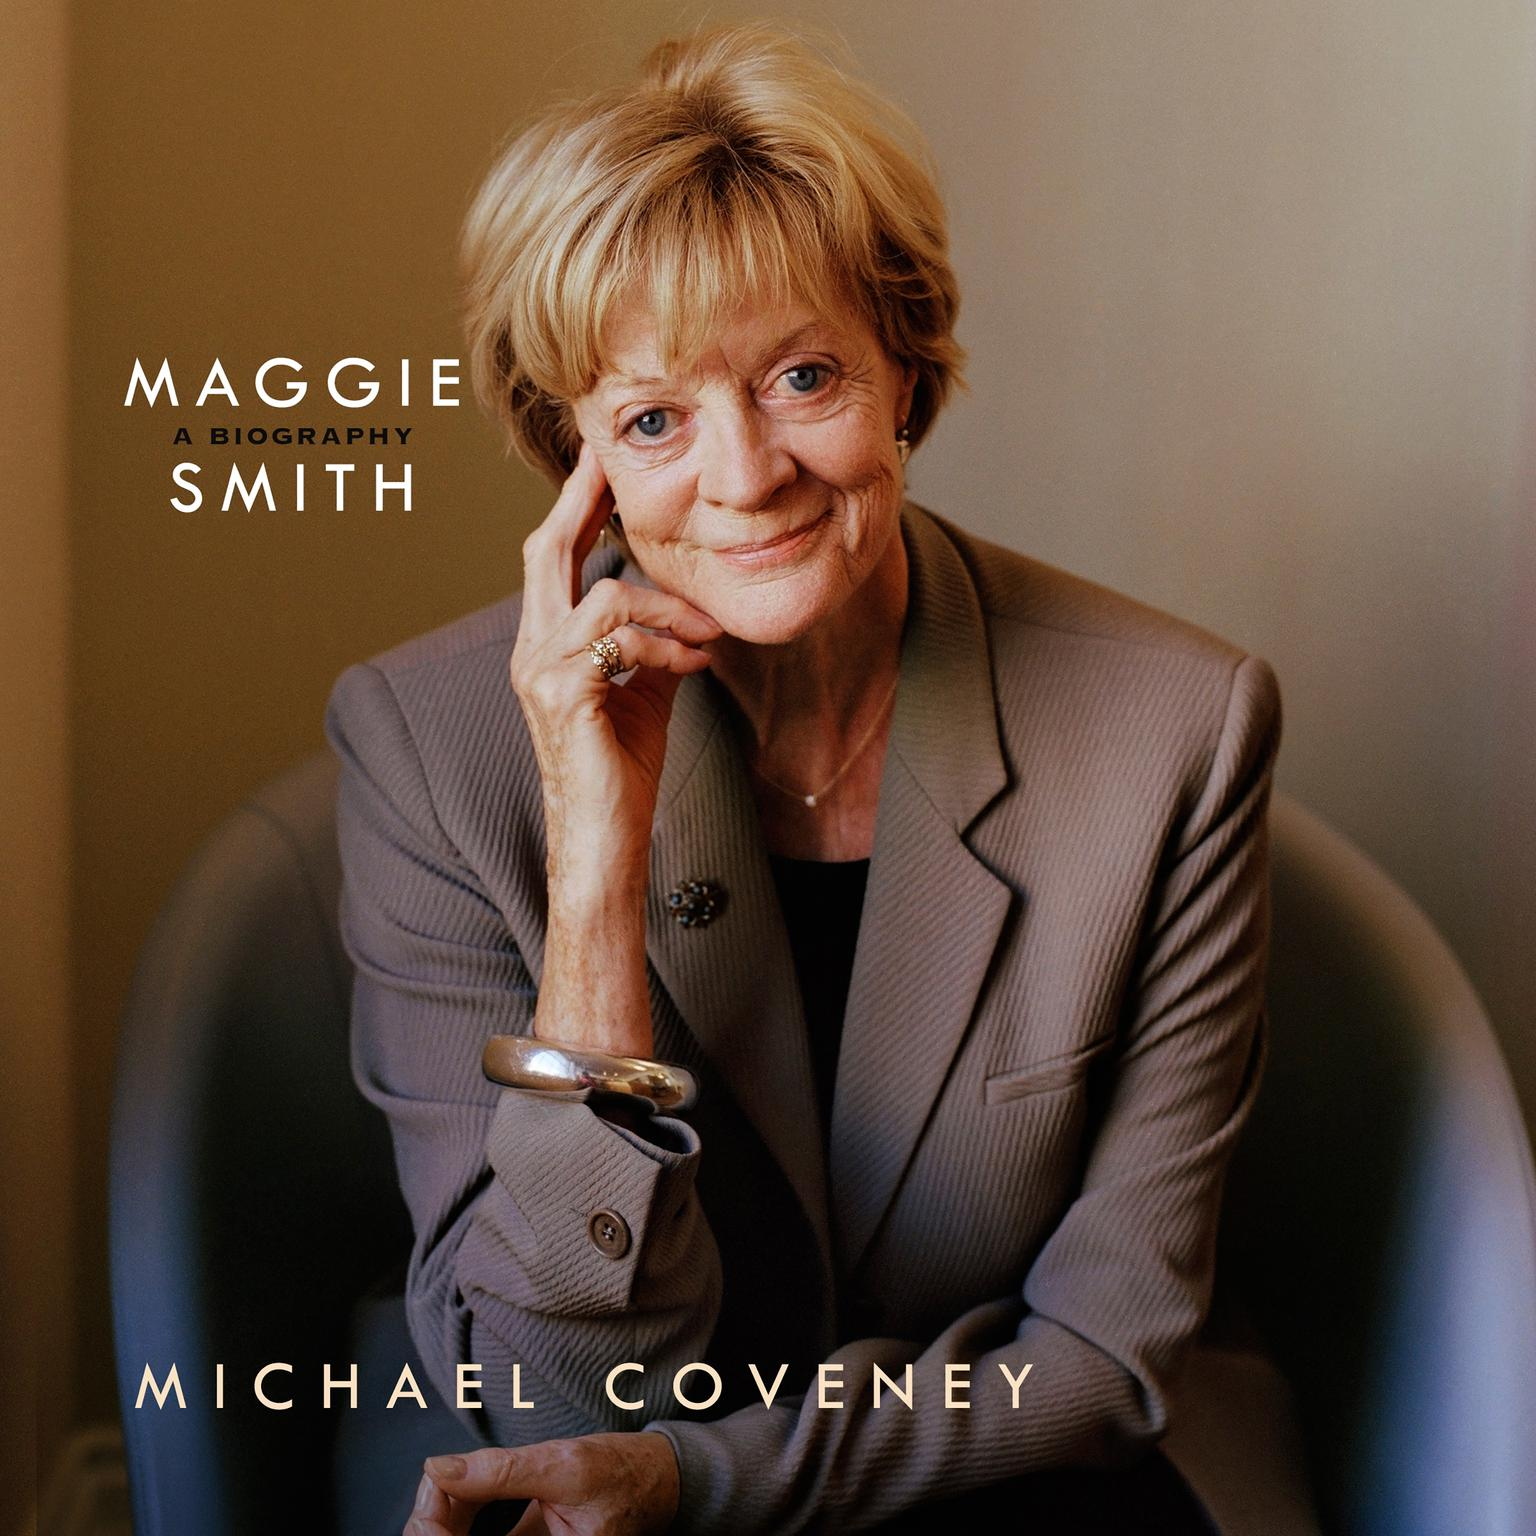 Biography Book Covers: Maggie Smith: A Biography - Audiobook